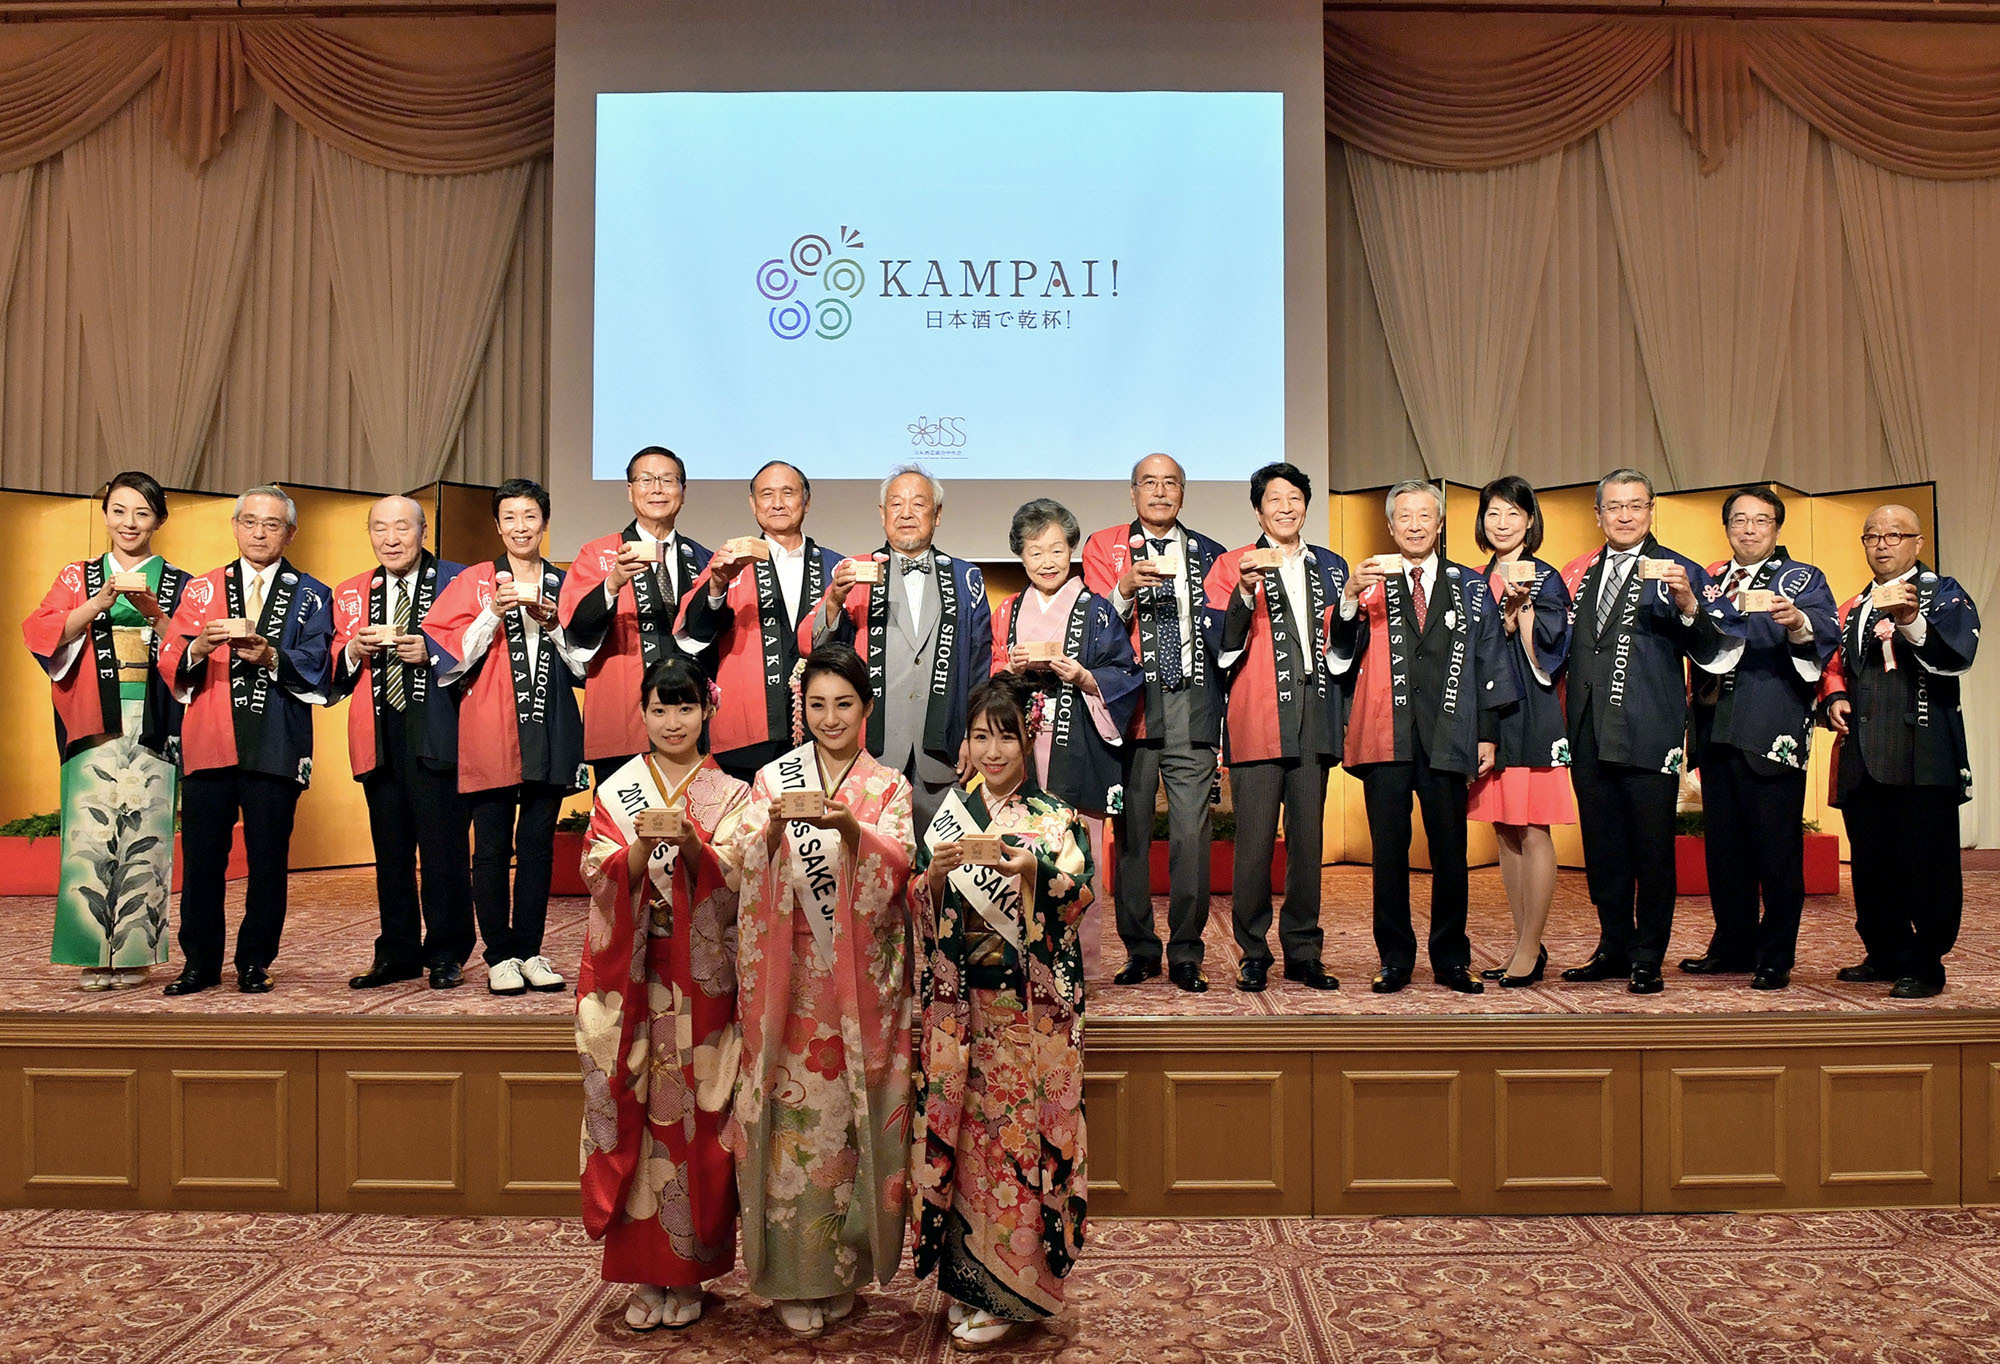 """Sake promotional group members raise a toast with masu-zake (sake served in traditional wooden boxes) at an event held at Meiji Kinenkan to advertise the """"Let's kampai together with sake!'' campaign during  """"October 1st is Sake Day"""" celebrations.    YOSHIAKI MIURA"""